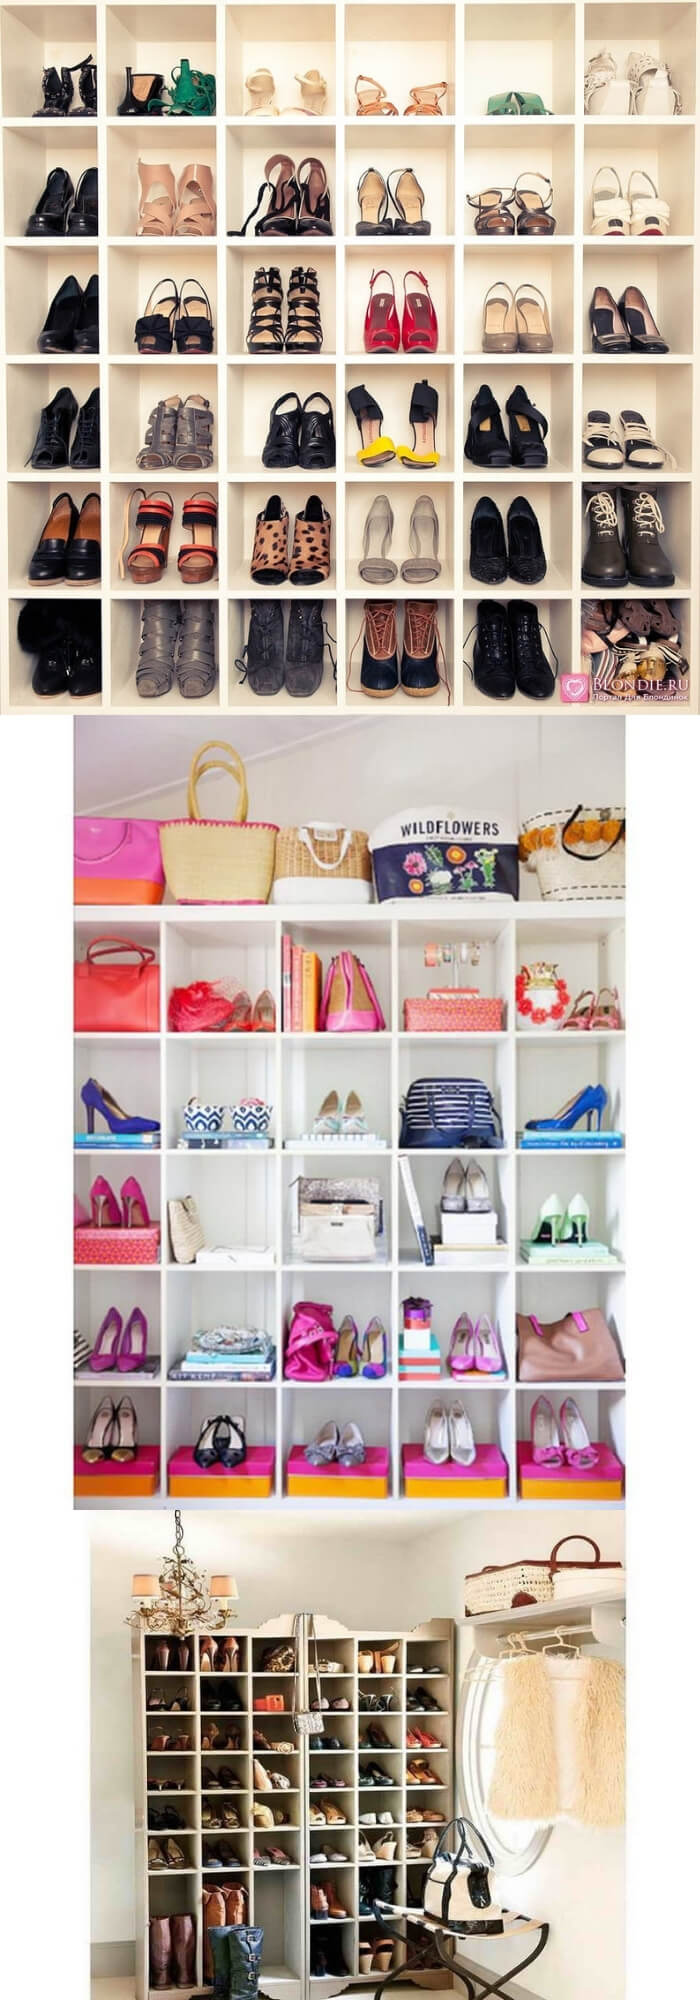 Organize Shoes without despair | Smart Shoe Storage Ideas & Designs For Any Zoom Size